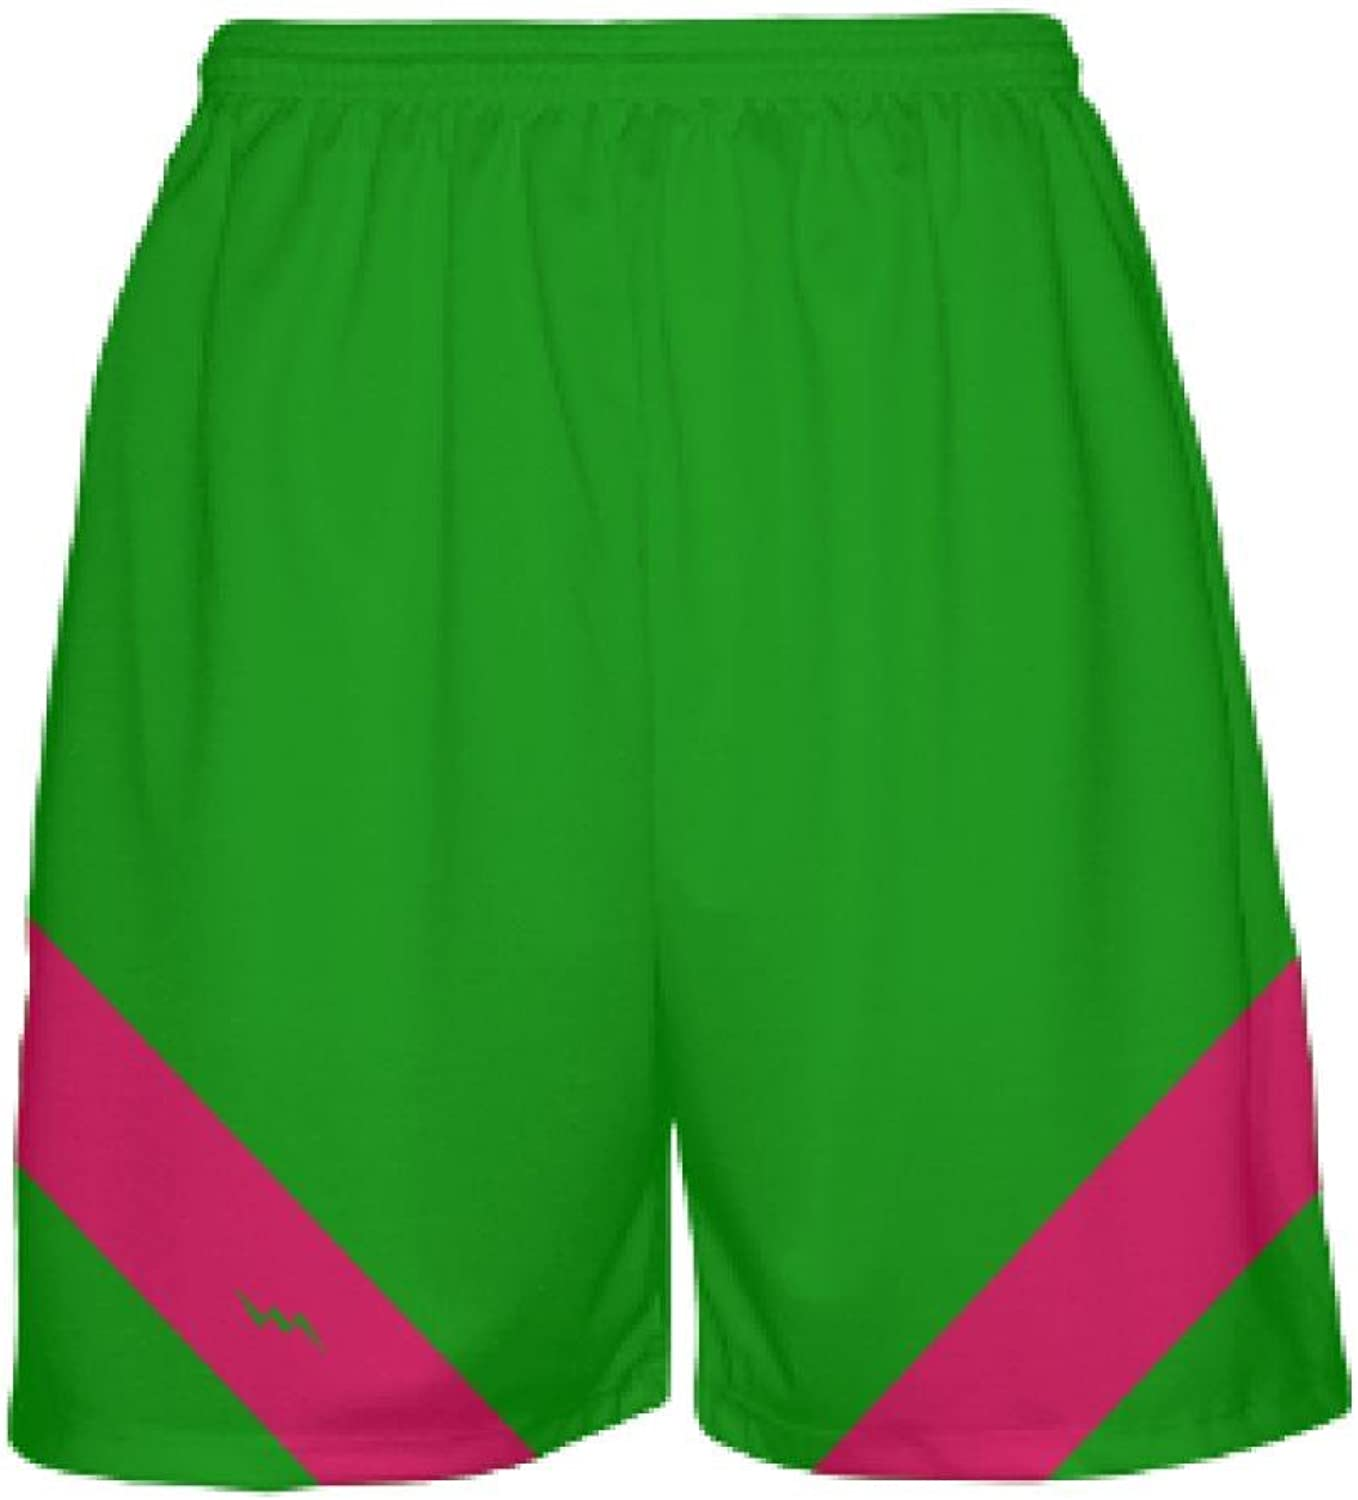 LightningWear Kelley Green Basketball Shorts